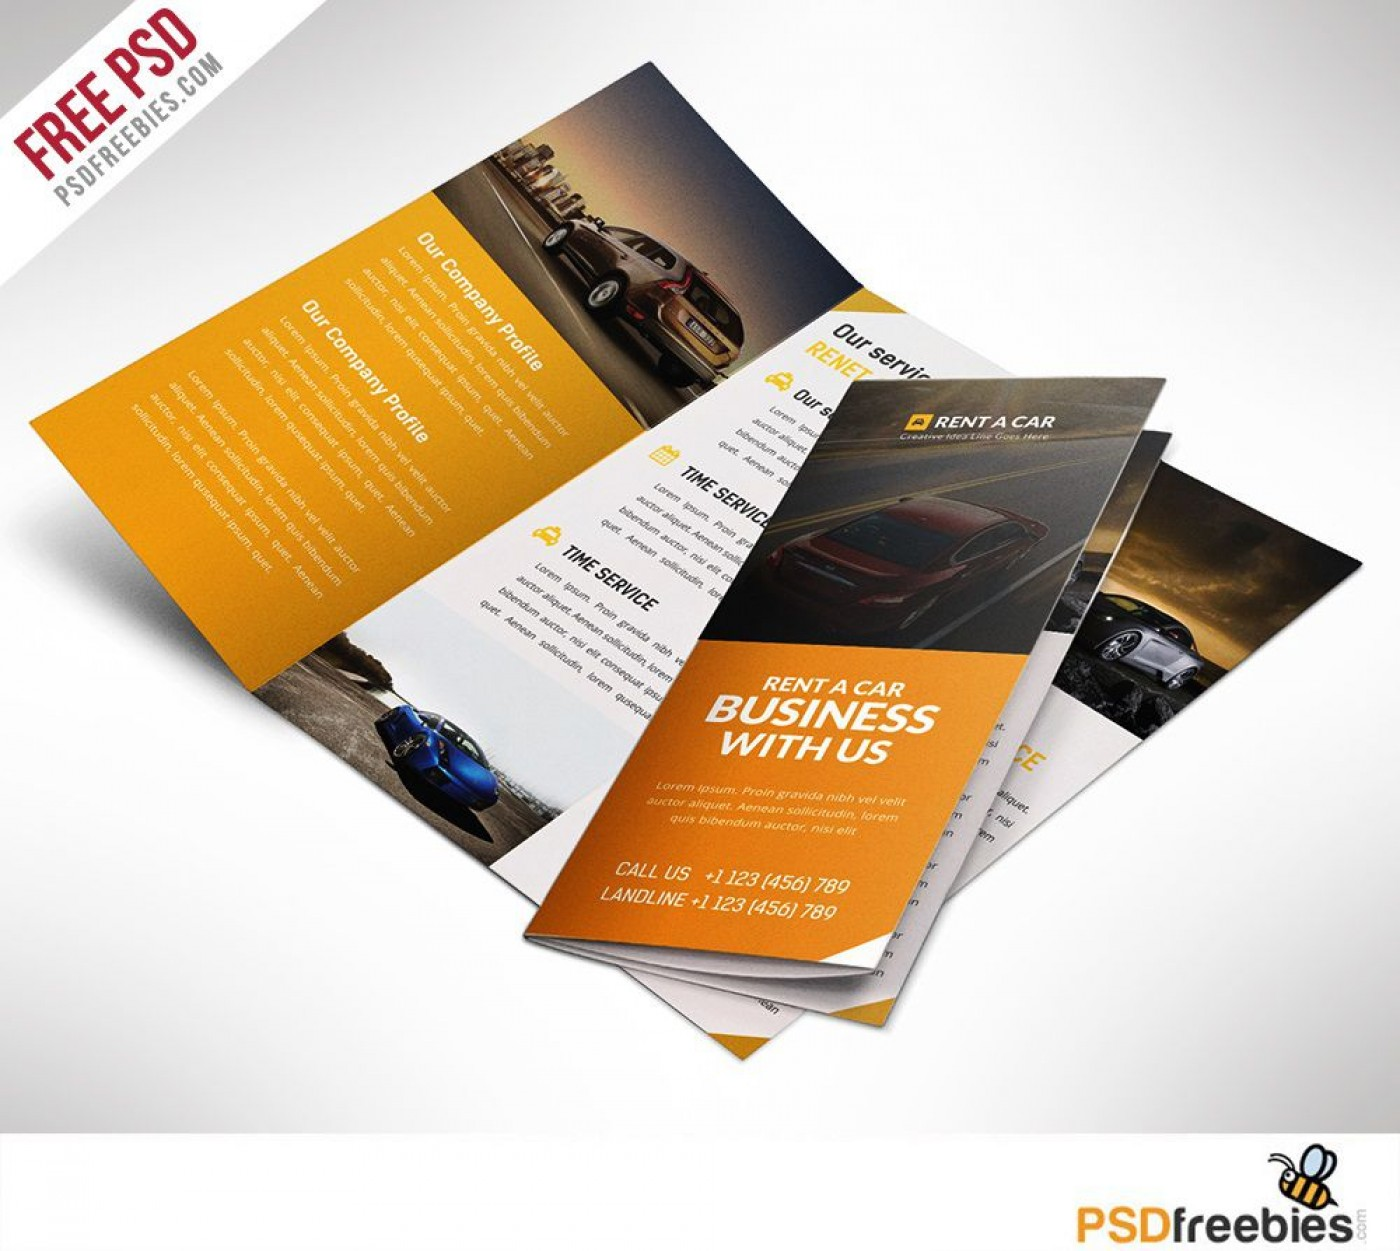 003 Unforgettable Photoshop Brochure Design Template Free Download Example 1400